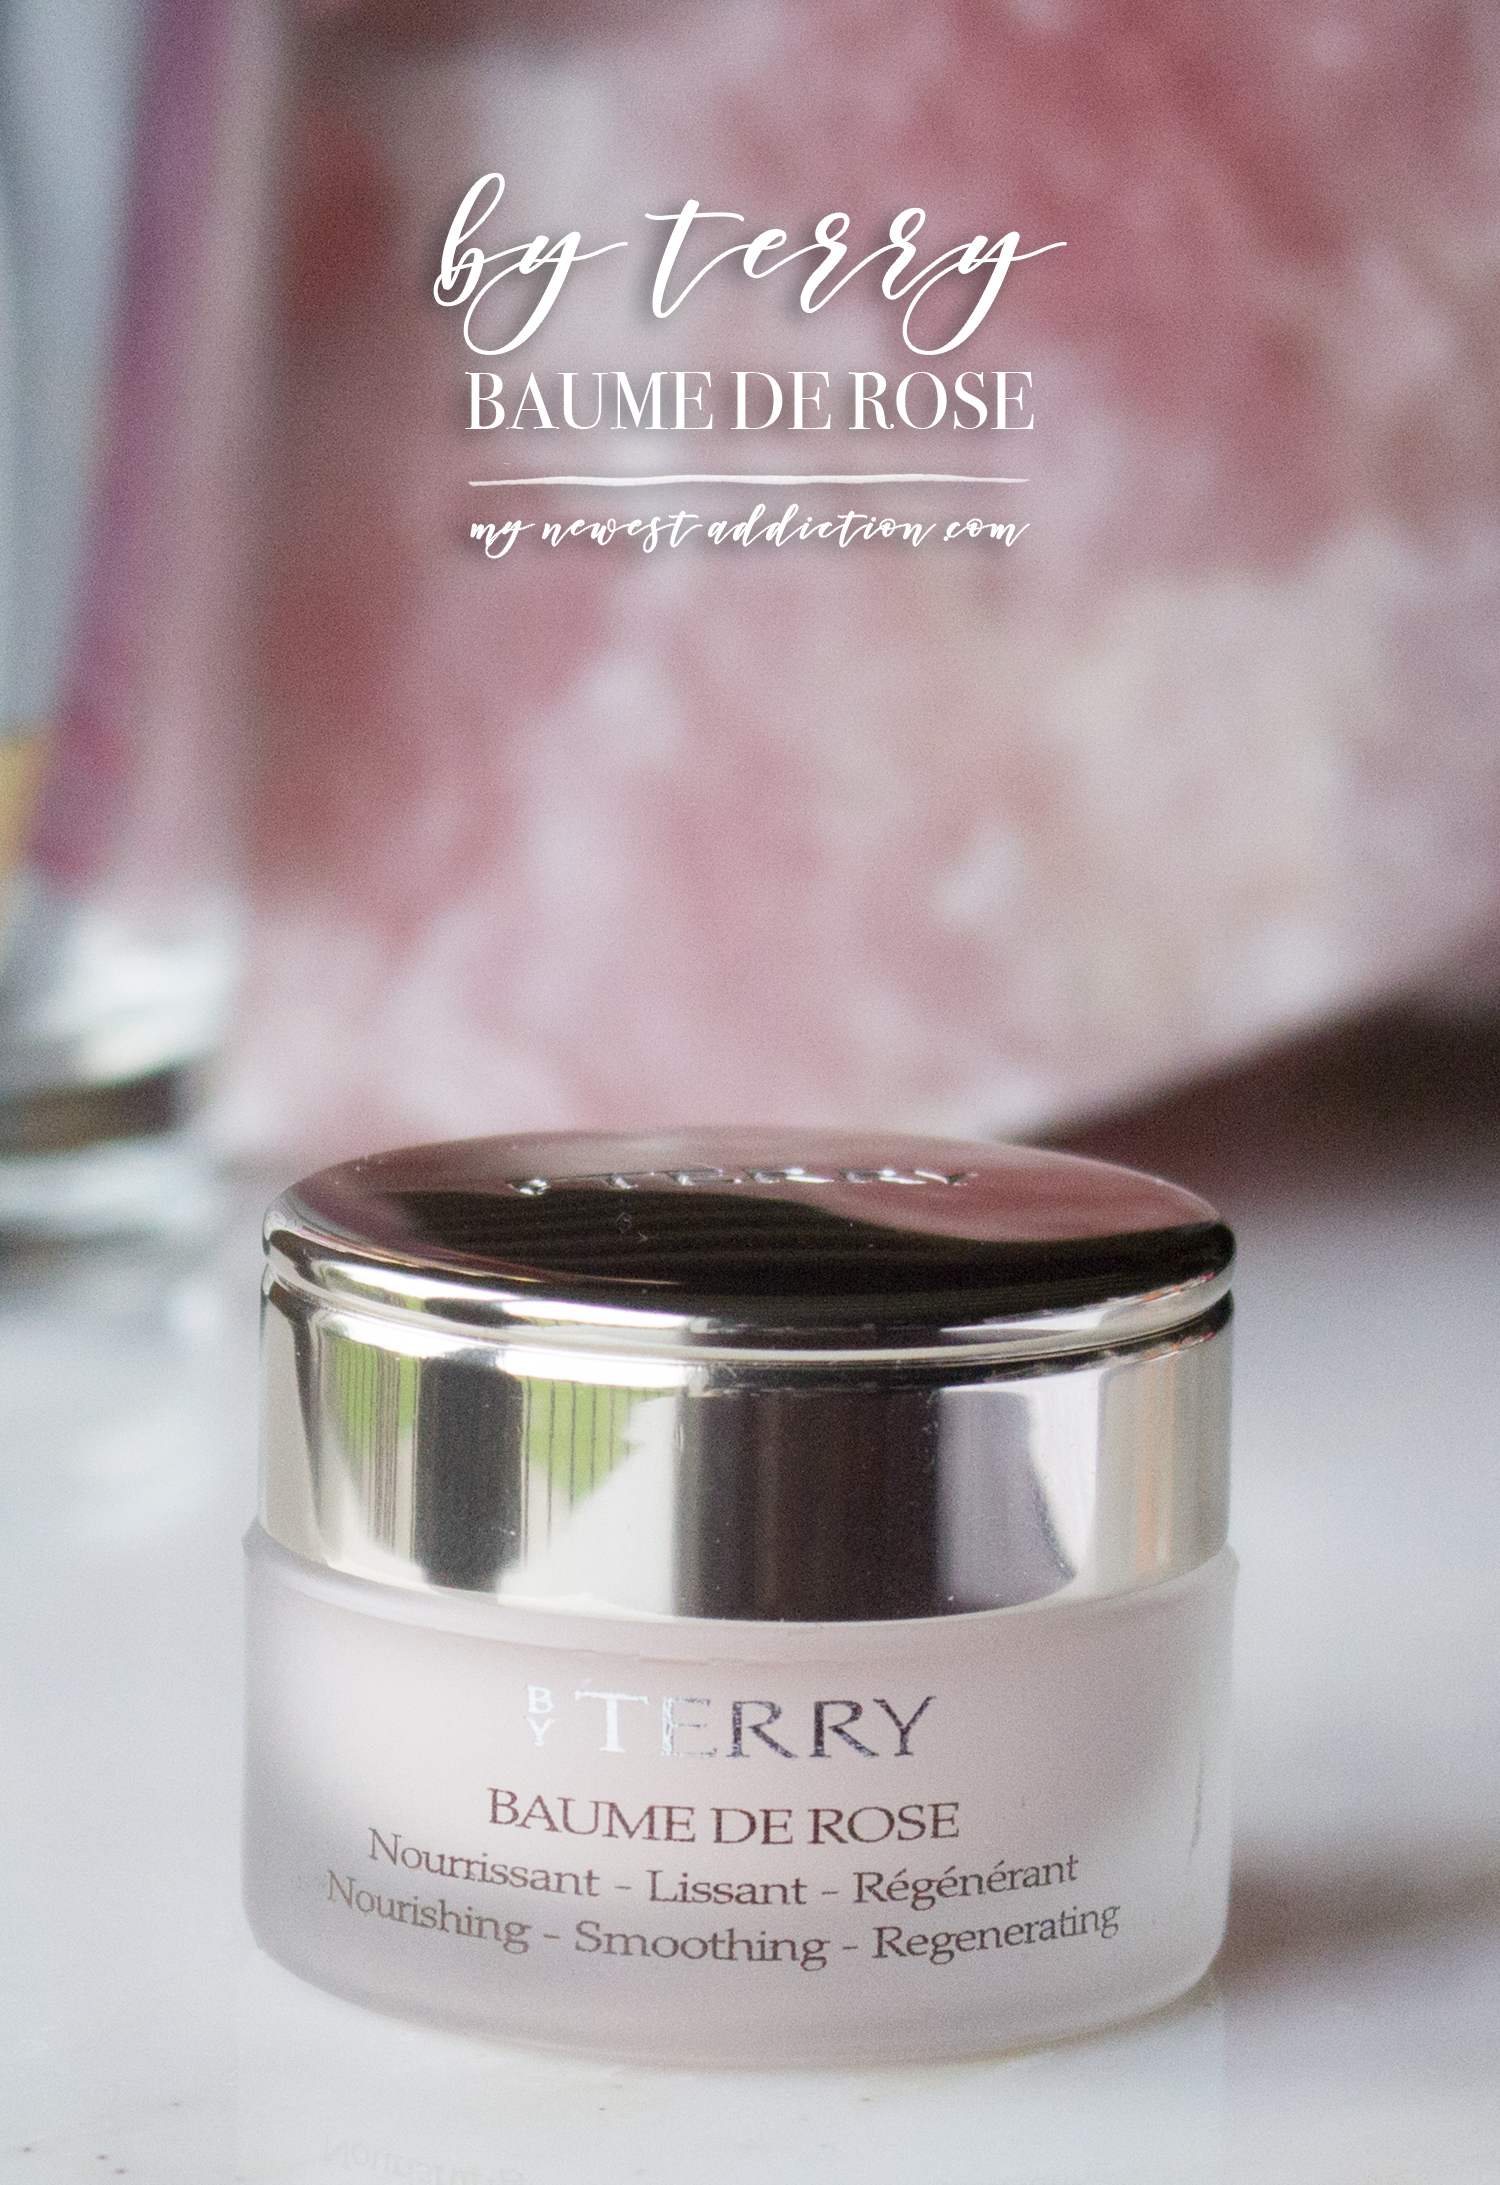 by Terry Baume de Rose Review